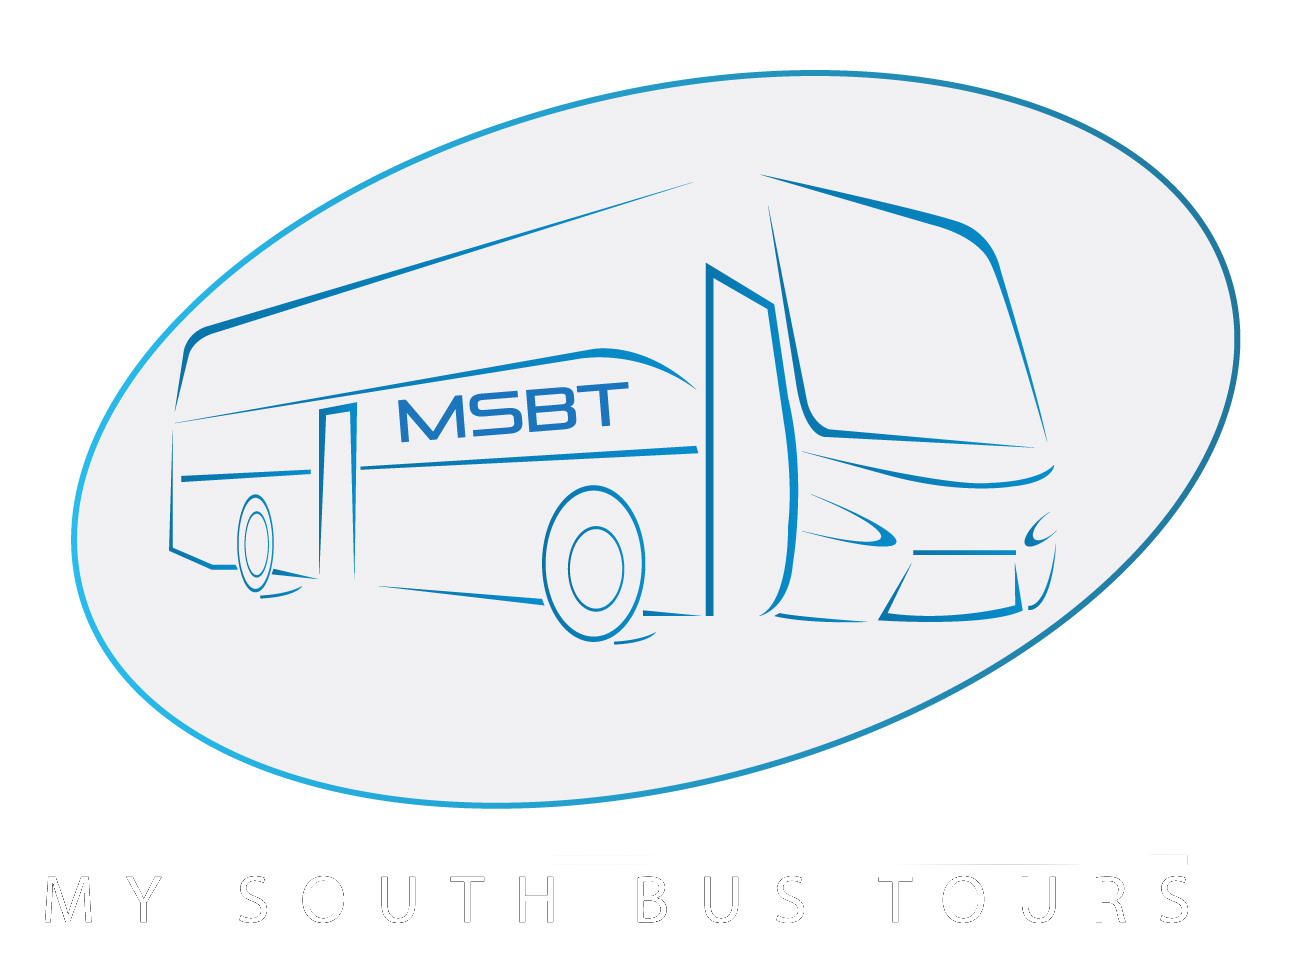 My-South-Bus-Tours_2 (1) (1)